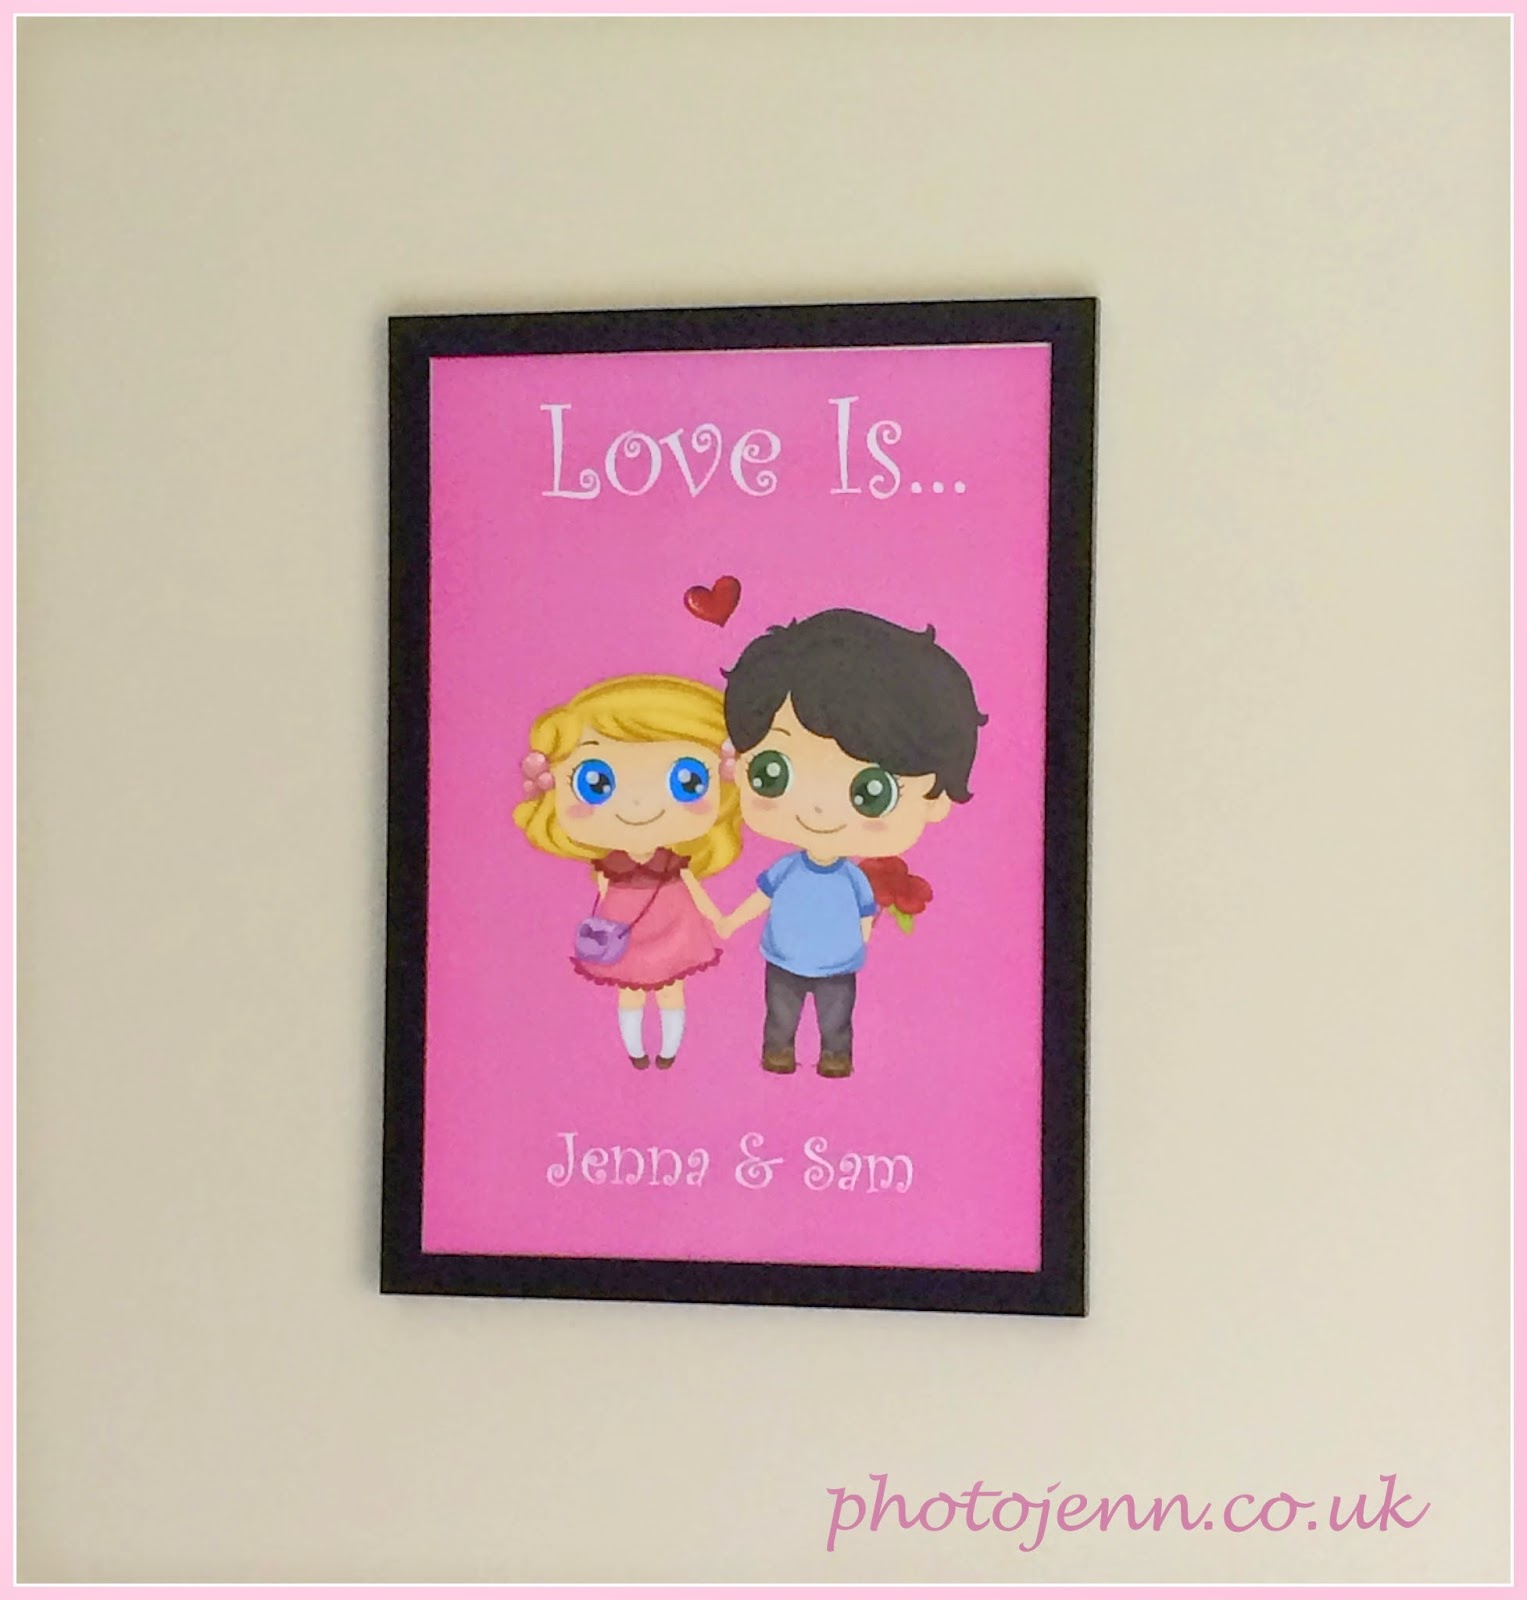 love-is-personalised-valentines-print-cartoon-poster-proud-to-be-a-review